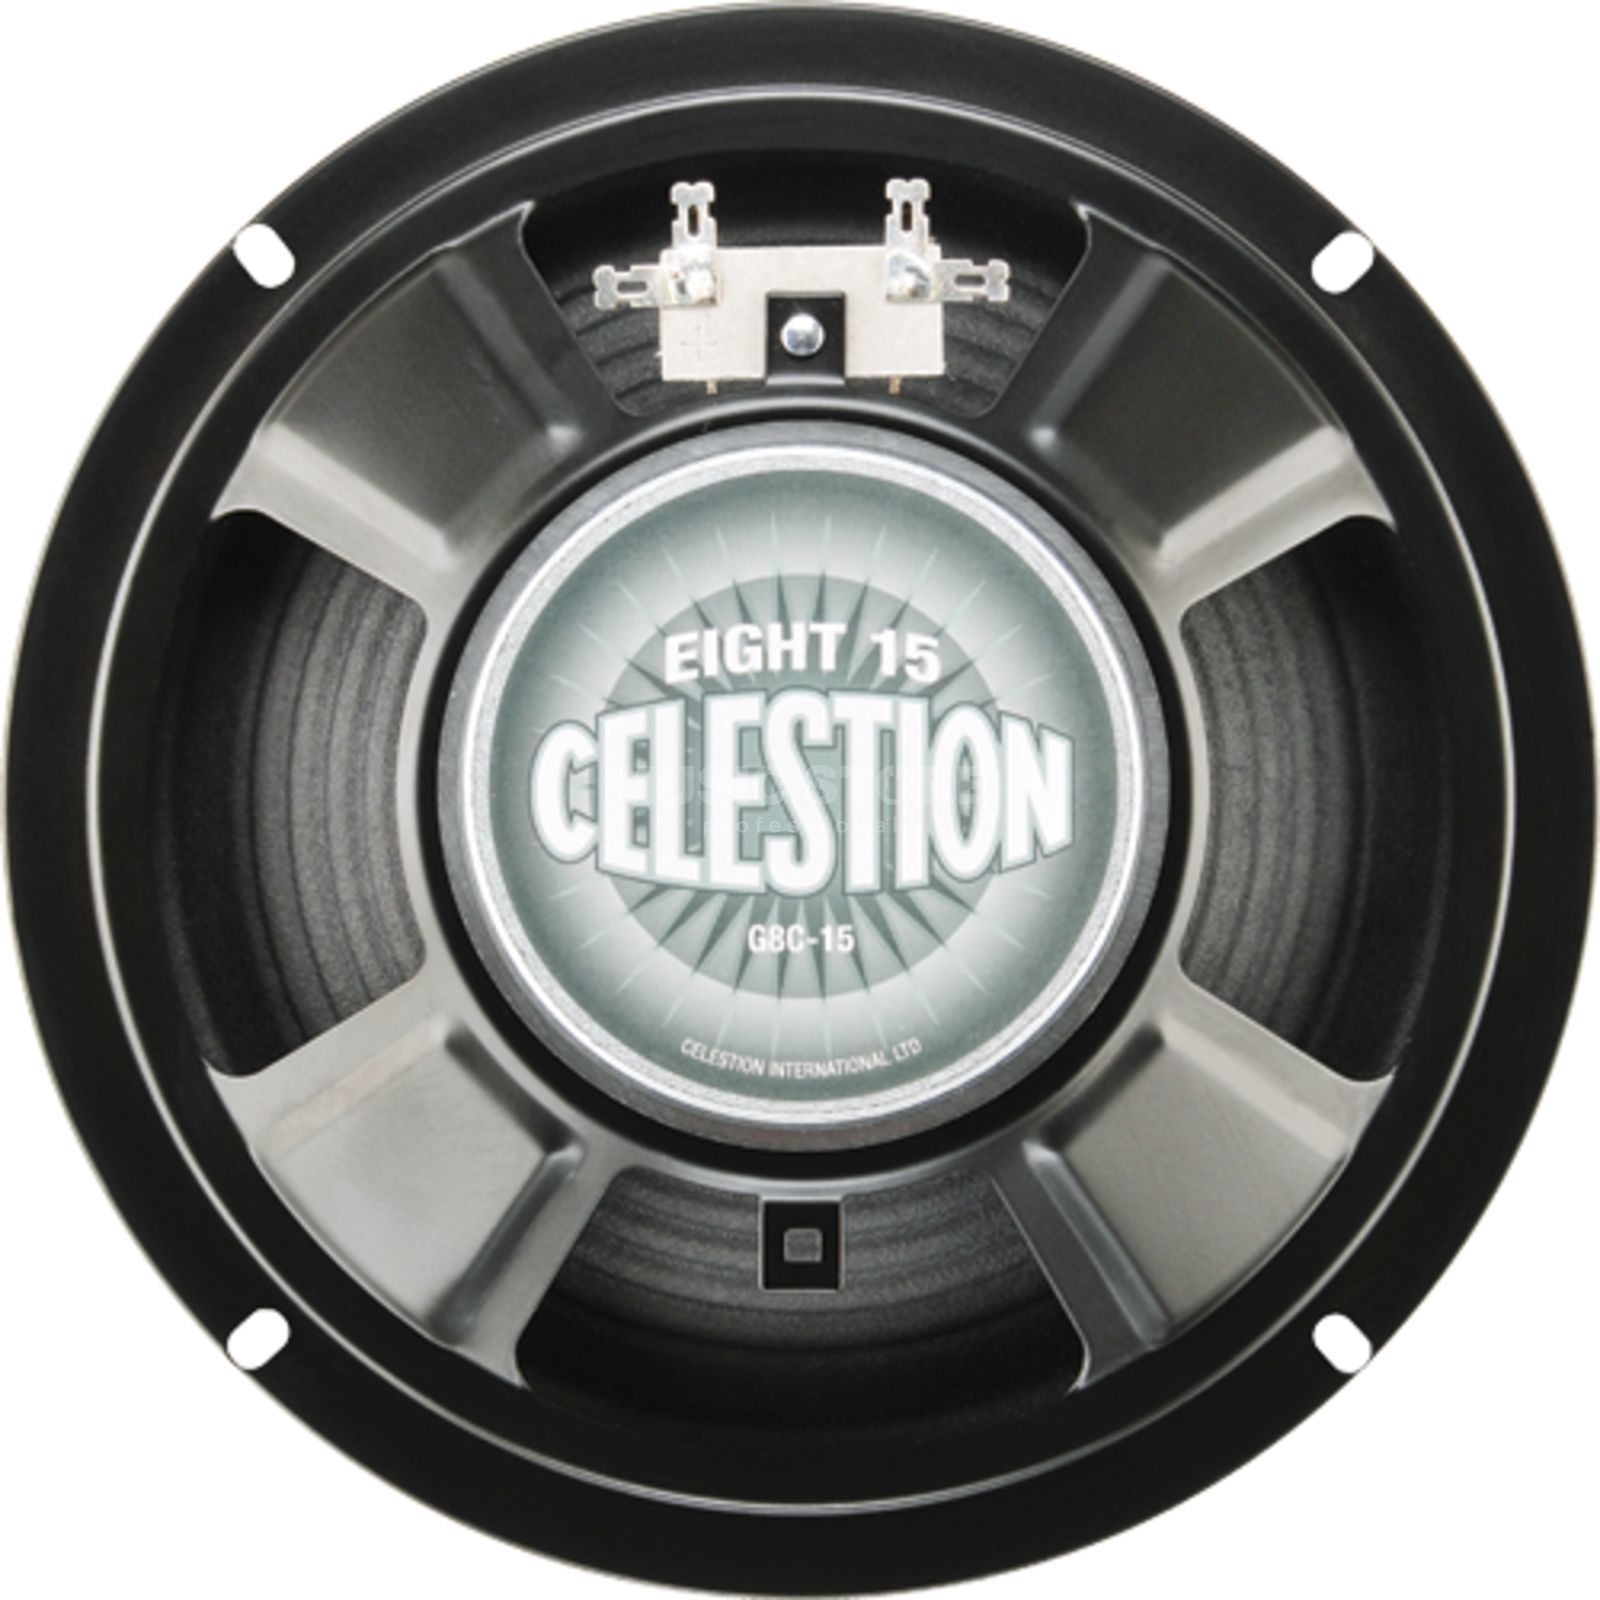 "Celestion Eight 15 8"" 15W 4 Ohm 95db Produktbild"